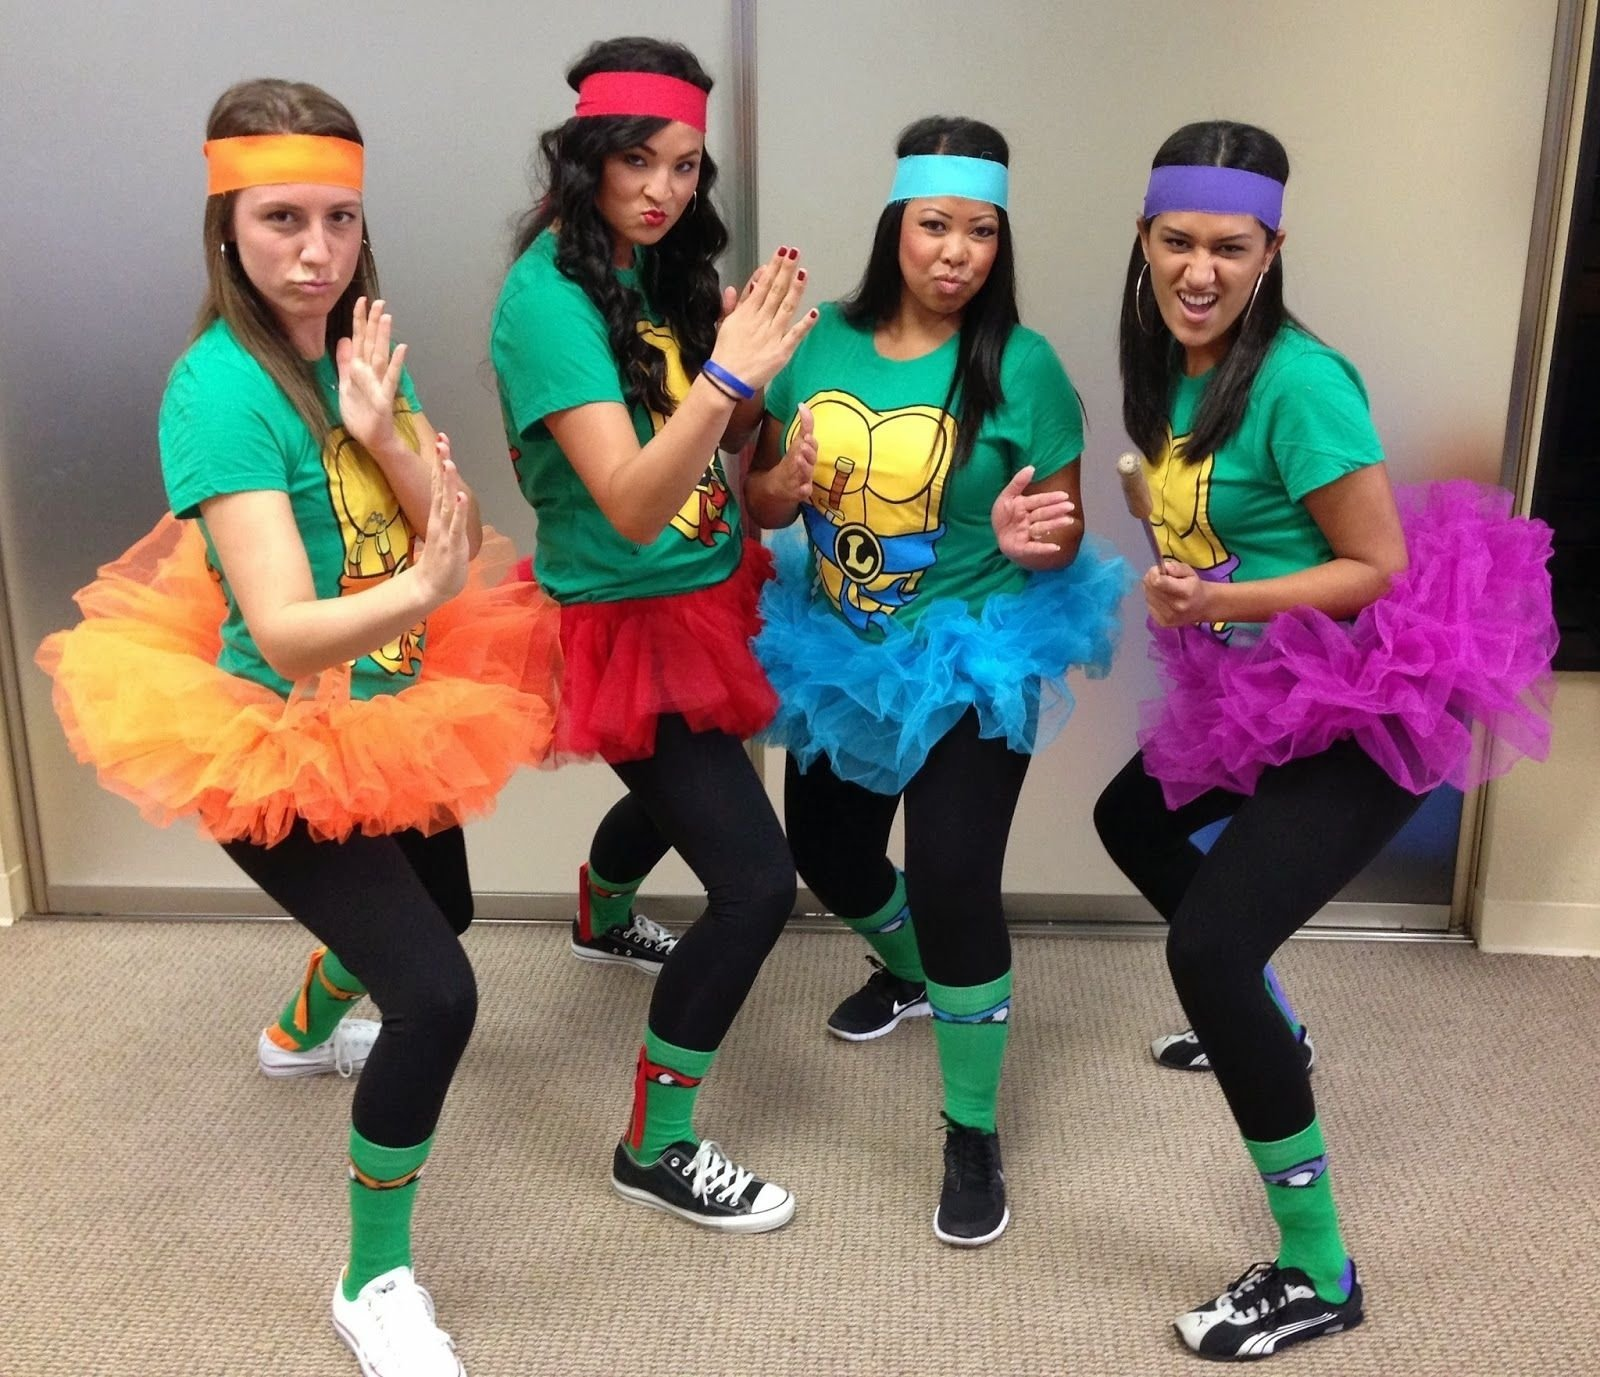 10 Ideal High School Halloween Costume Ideas 26 90s group halloween costumes you and your squad should dress up 11 2021